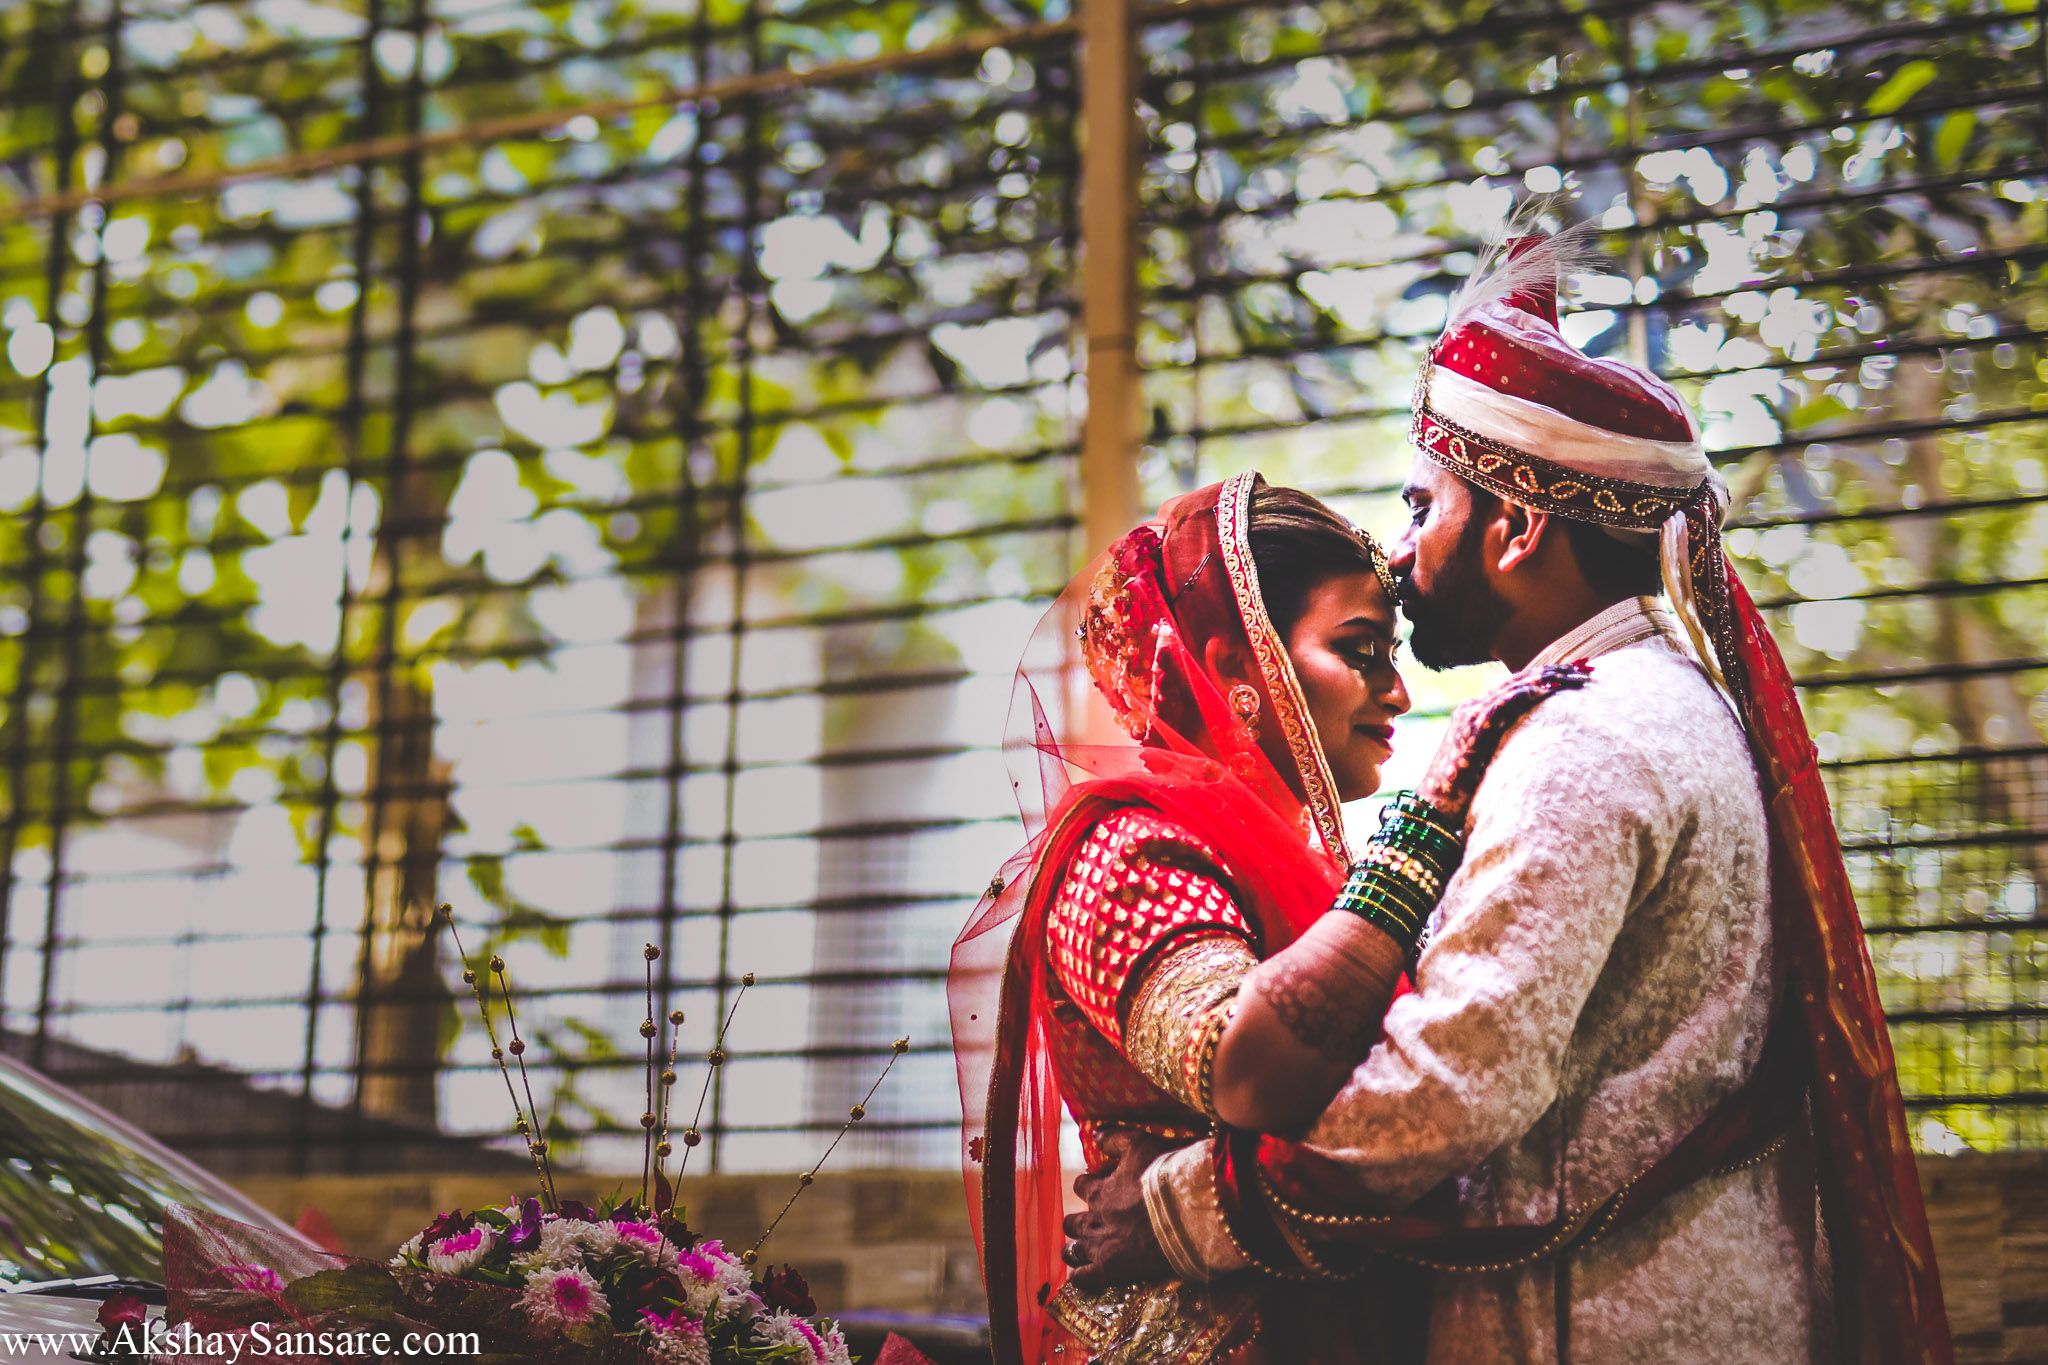 Ajay & Devika Akshay Sansare Photography Best Candid wedding photographer in mumbai india8.jpg